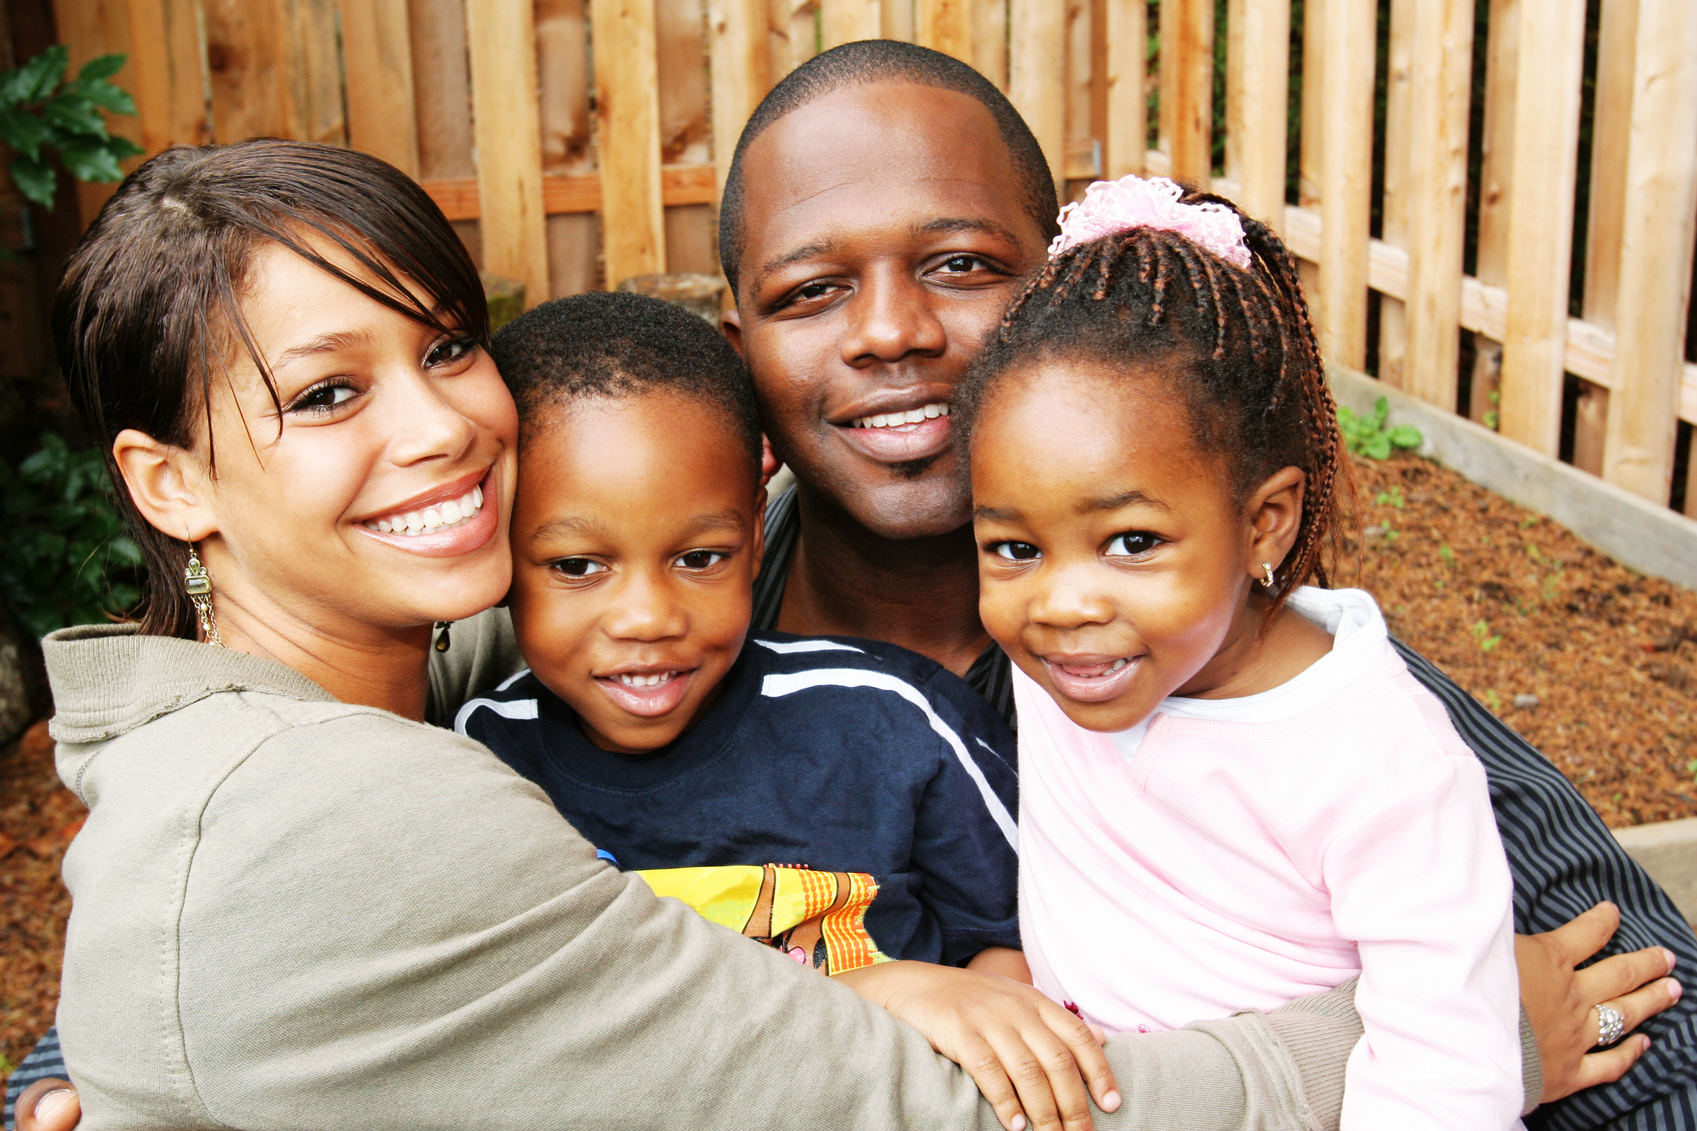 African American Family Pictures Free Download Clip Art.